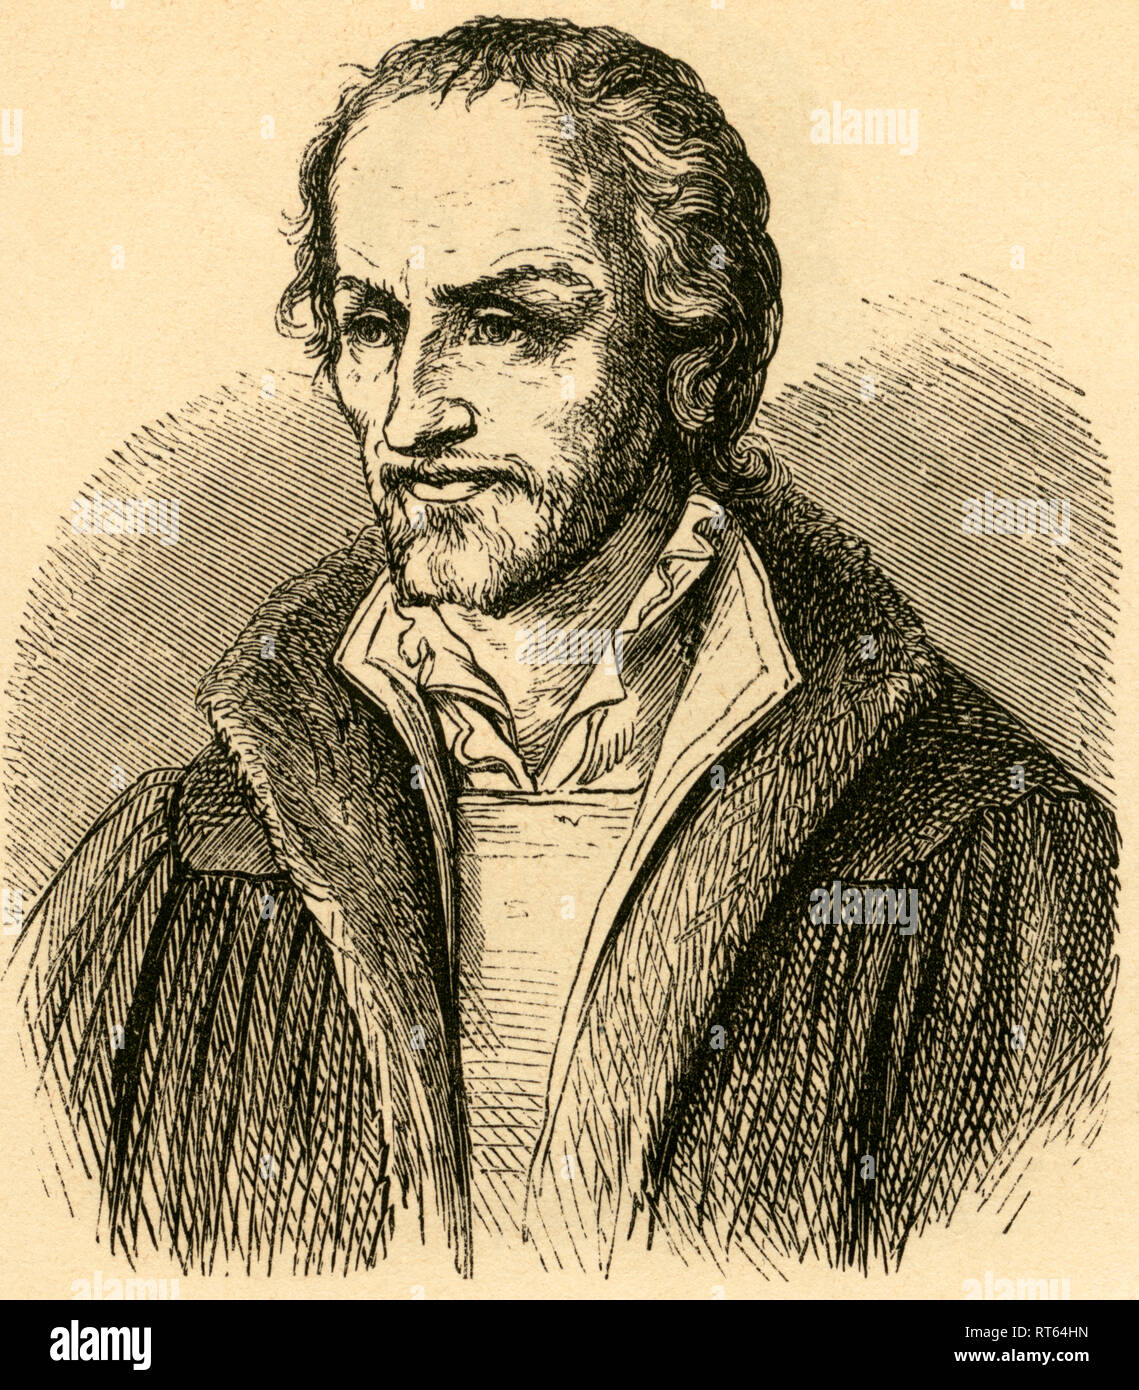 Philip Melanchthon, German Lutheran Reformer, 1497-1560, Illustration from: 'Deutsche Männer ' (German men), images from the history of the German people from Hermann dem Cherusker to our days by Manuel Raschke, with 317 woodcuts from J.J. Webers xyl. Anstalt in Leipzig, published by Karl Prochaska, Leipzig and Teschen, 1868., Additional-Rights-Clearance-Info-Not-Available - Stock Image